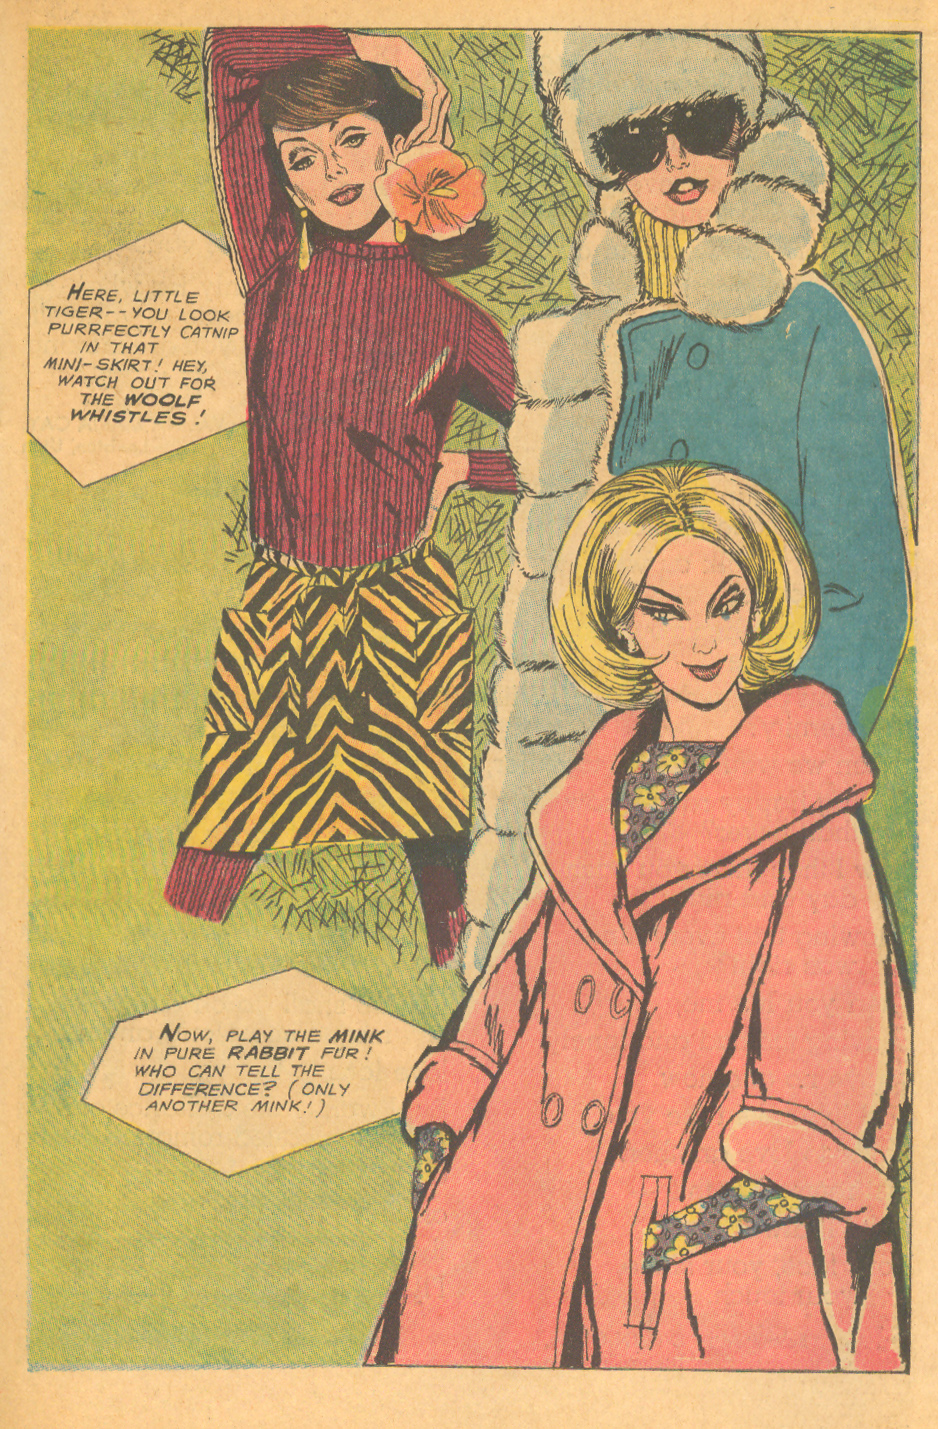 Mod fashion from the 1960s illustration Heart Throbs #106 (February/March 1967) with art by Tony Abruzzo!